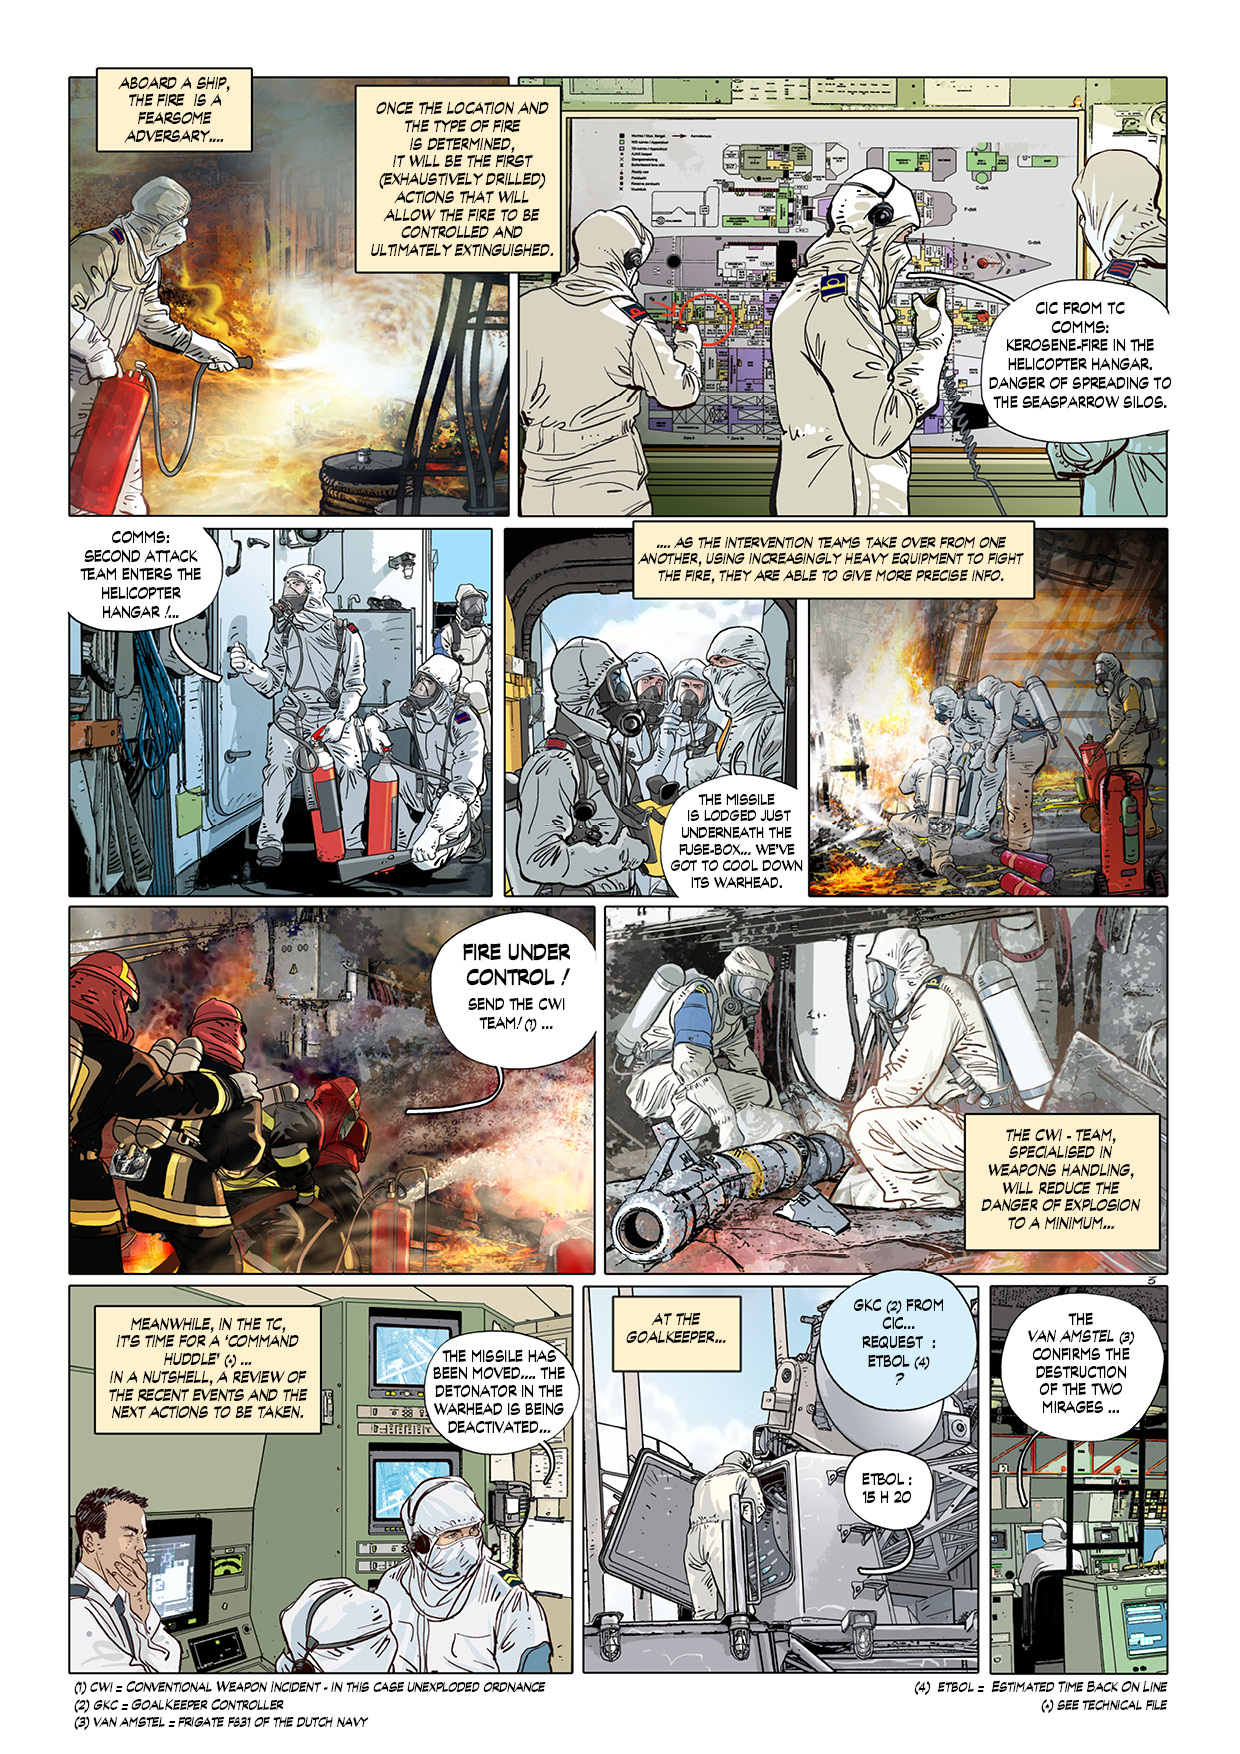 SARC-6 UK - Page 7 - Comic strip